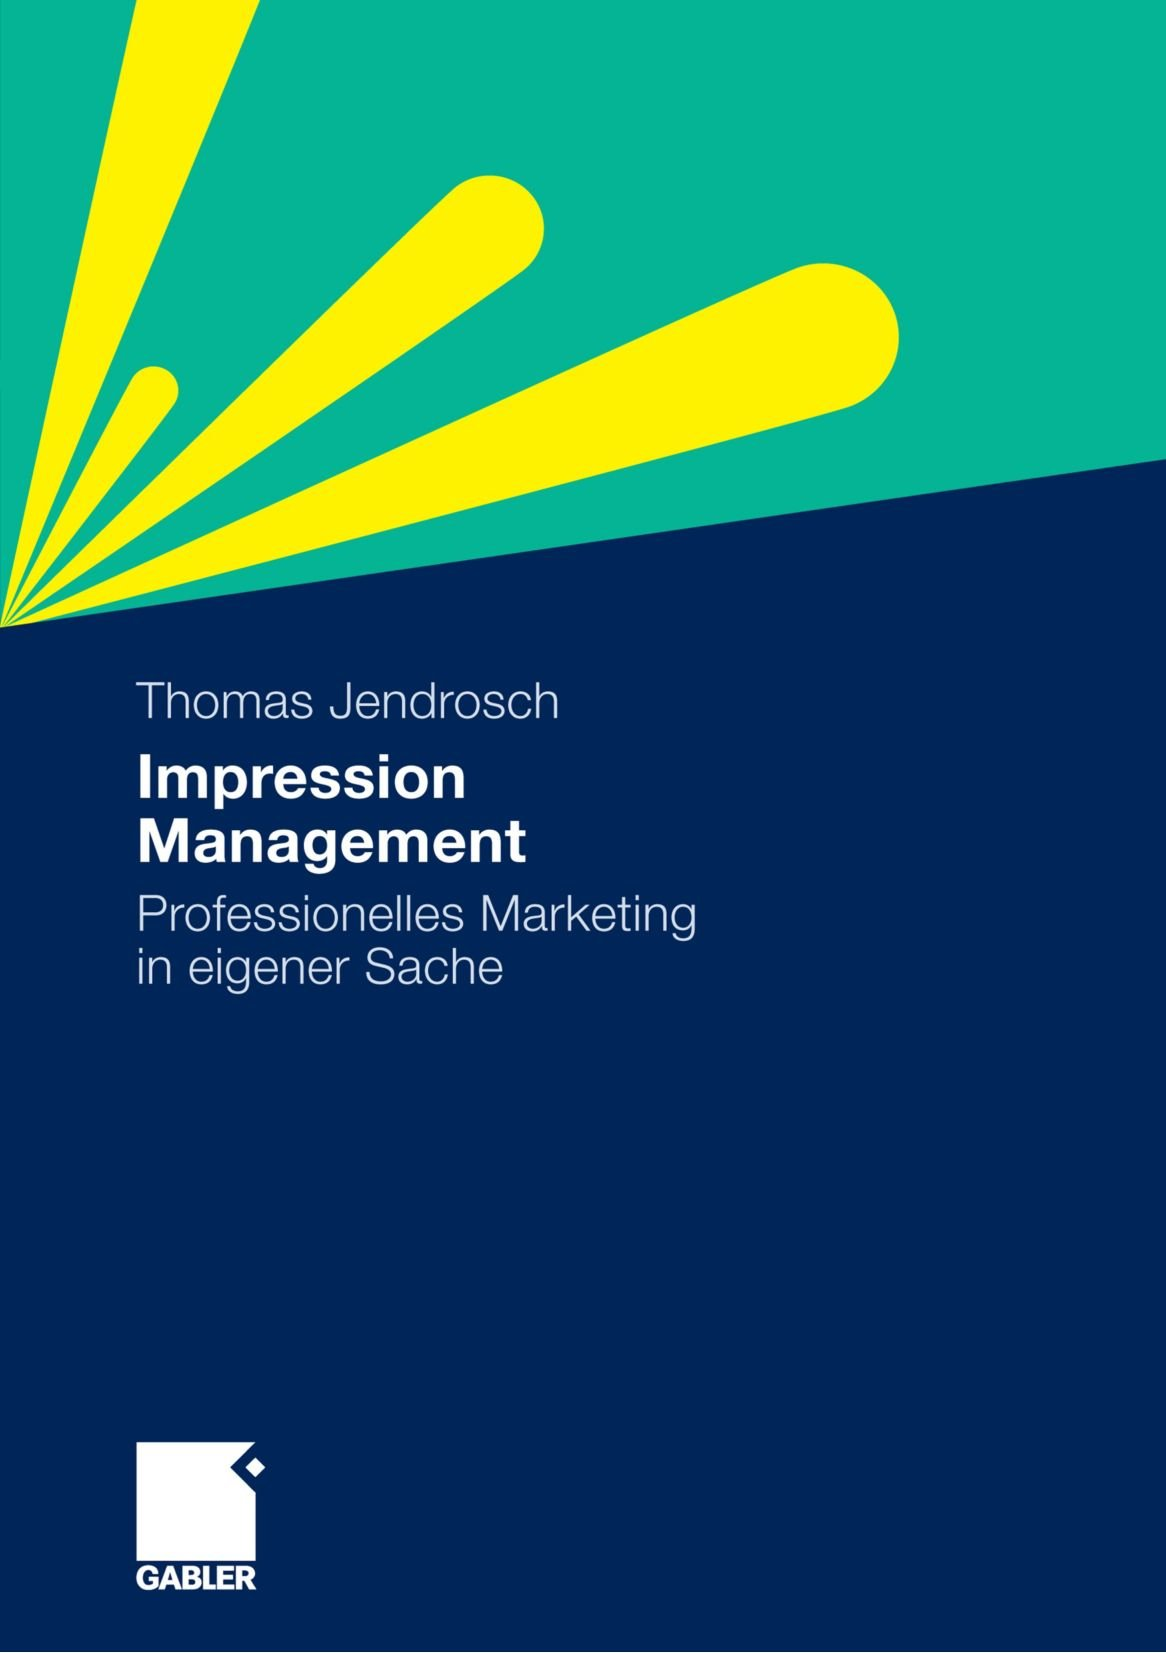 Managing Organizational Gender Diversity Images: A Content Analysis of German Corporate Websites